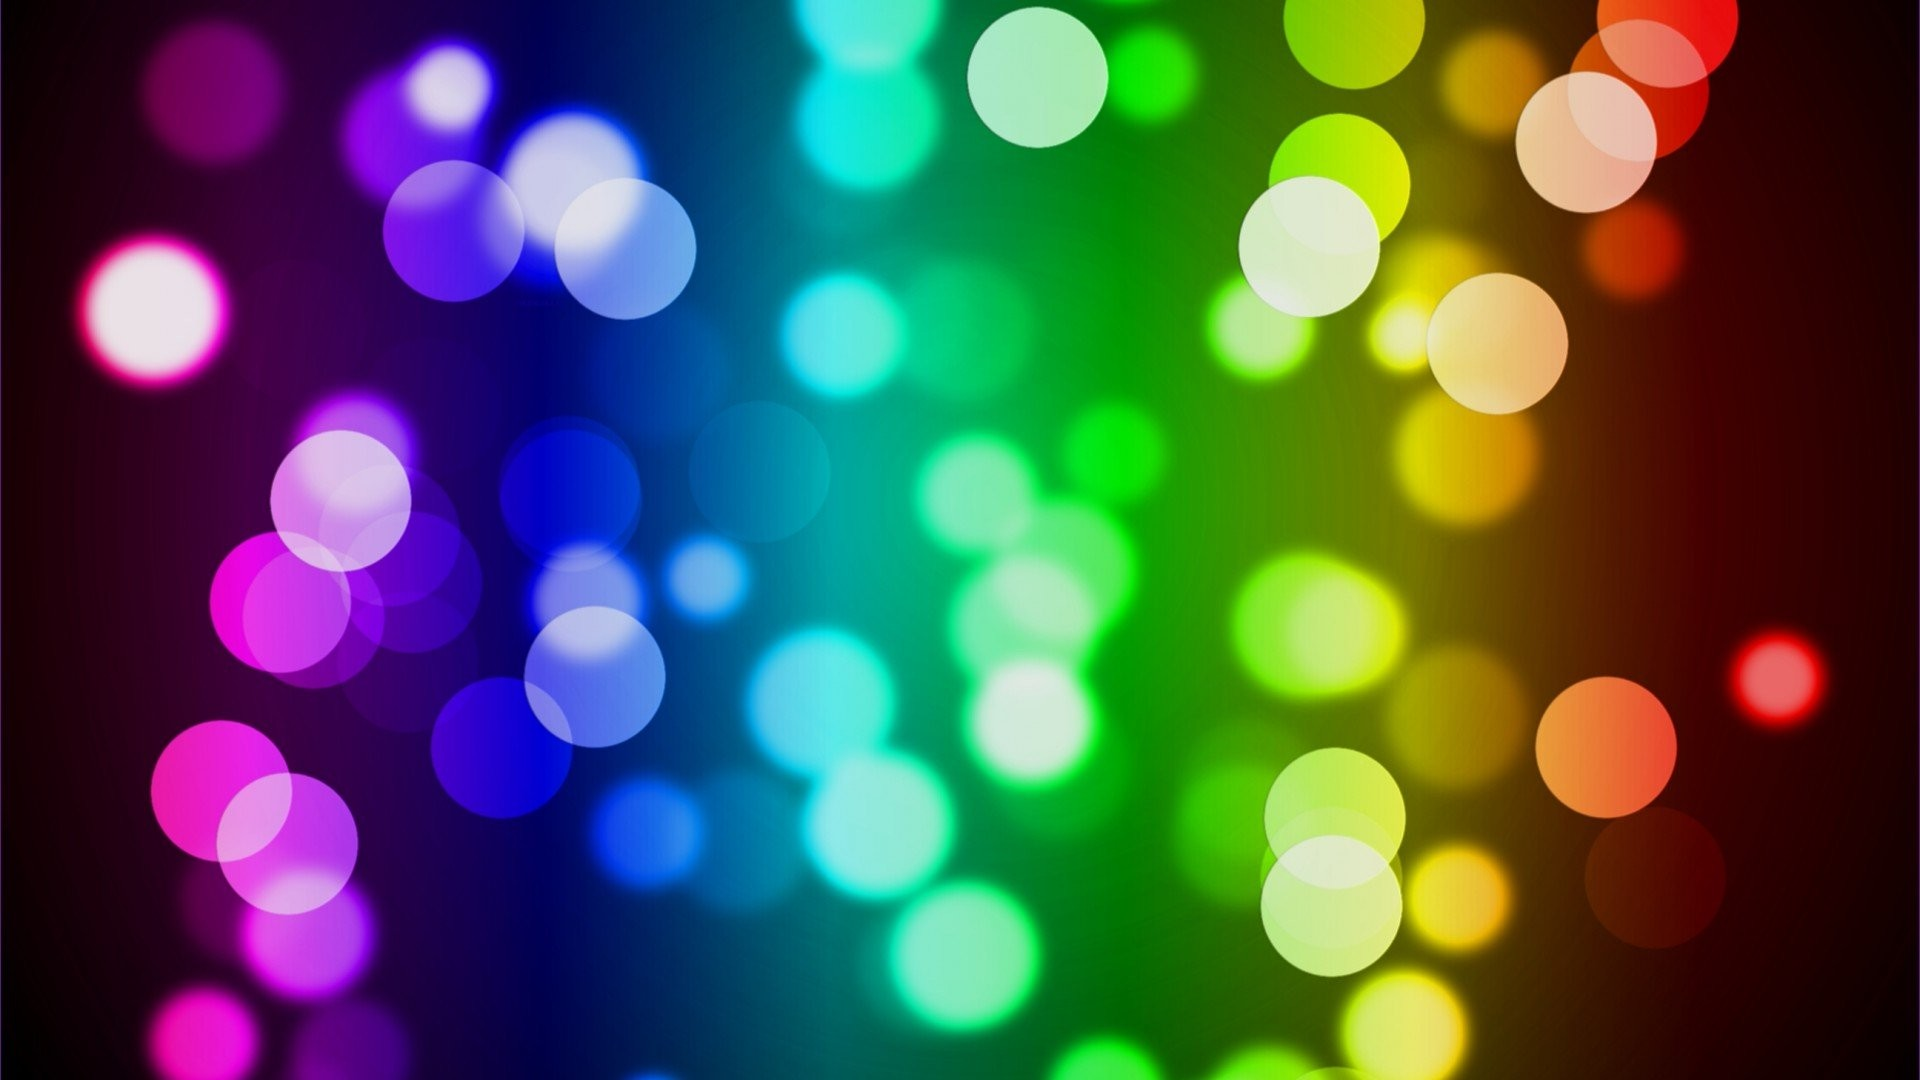 Download Cute Wallpaper For Mobile Phone Cute Colorful Backgrounds 183 ①